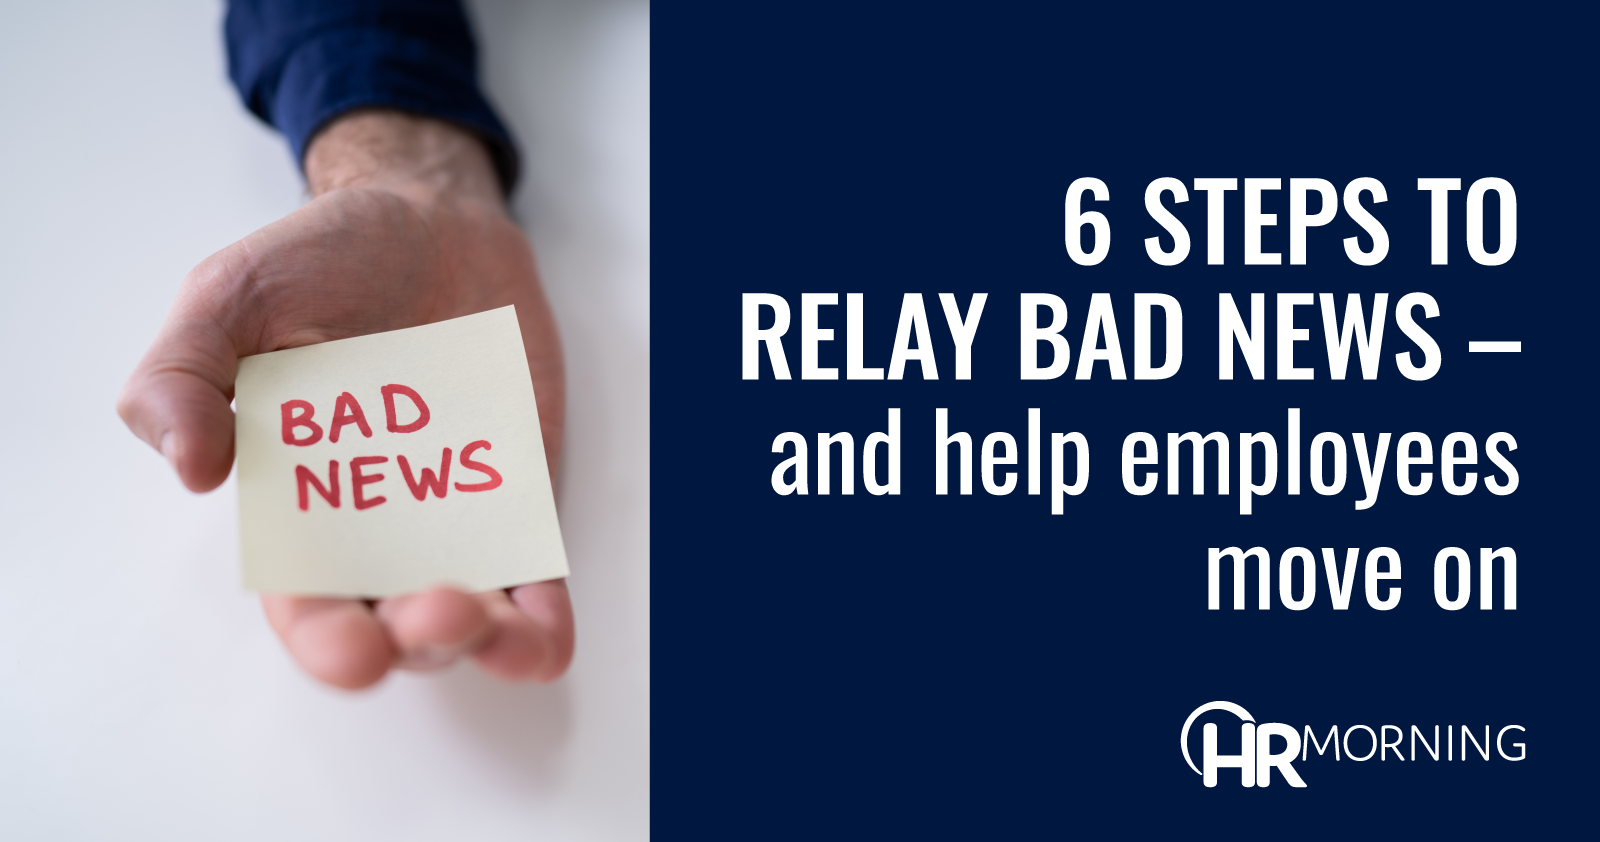 6 Steps To Relay Bad News And Help Employees Move On